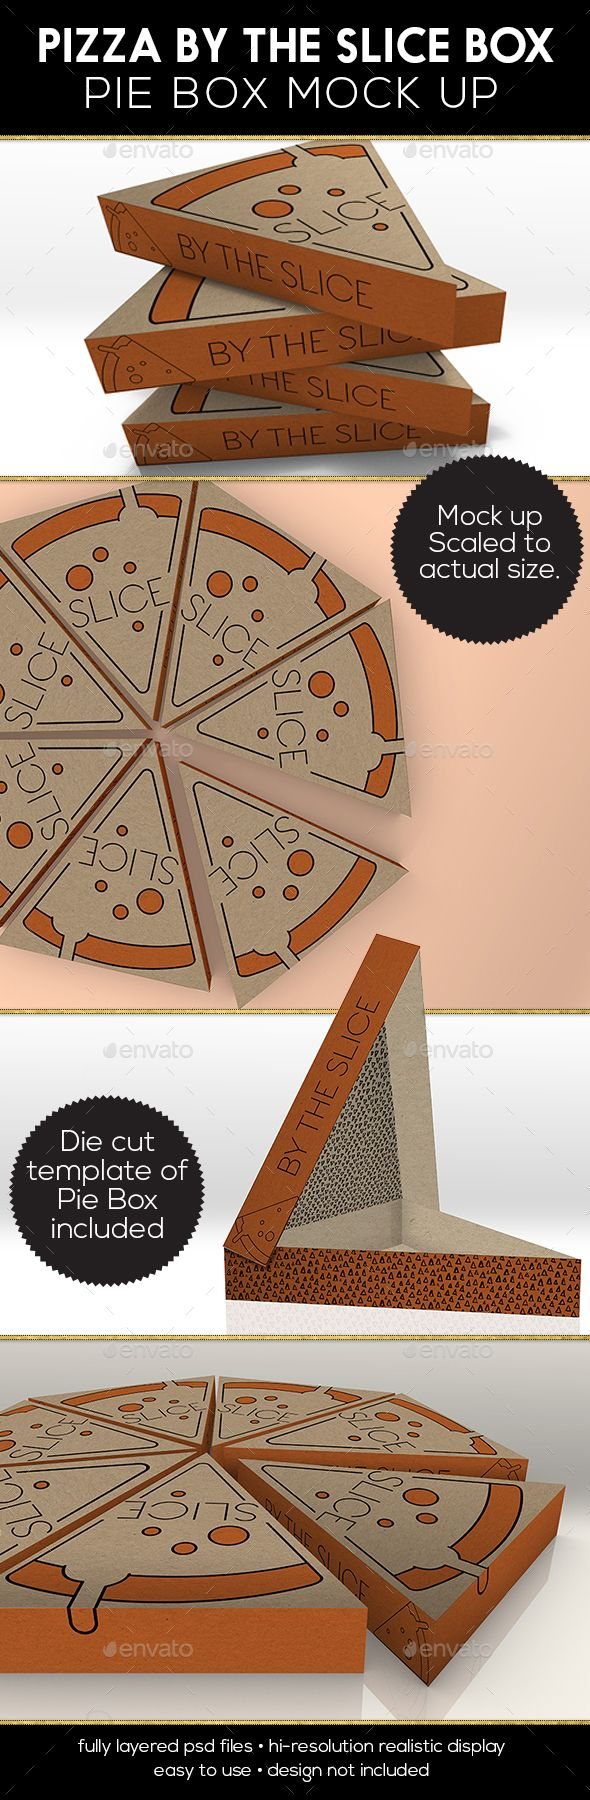 Packaging mockup Pizza or Pie Slice Box - Product Mock-Ups Graphics